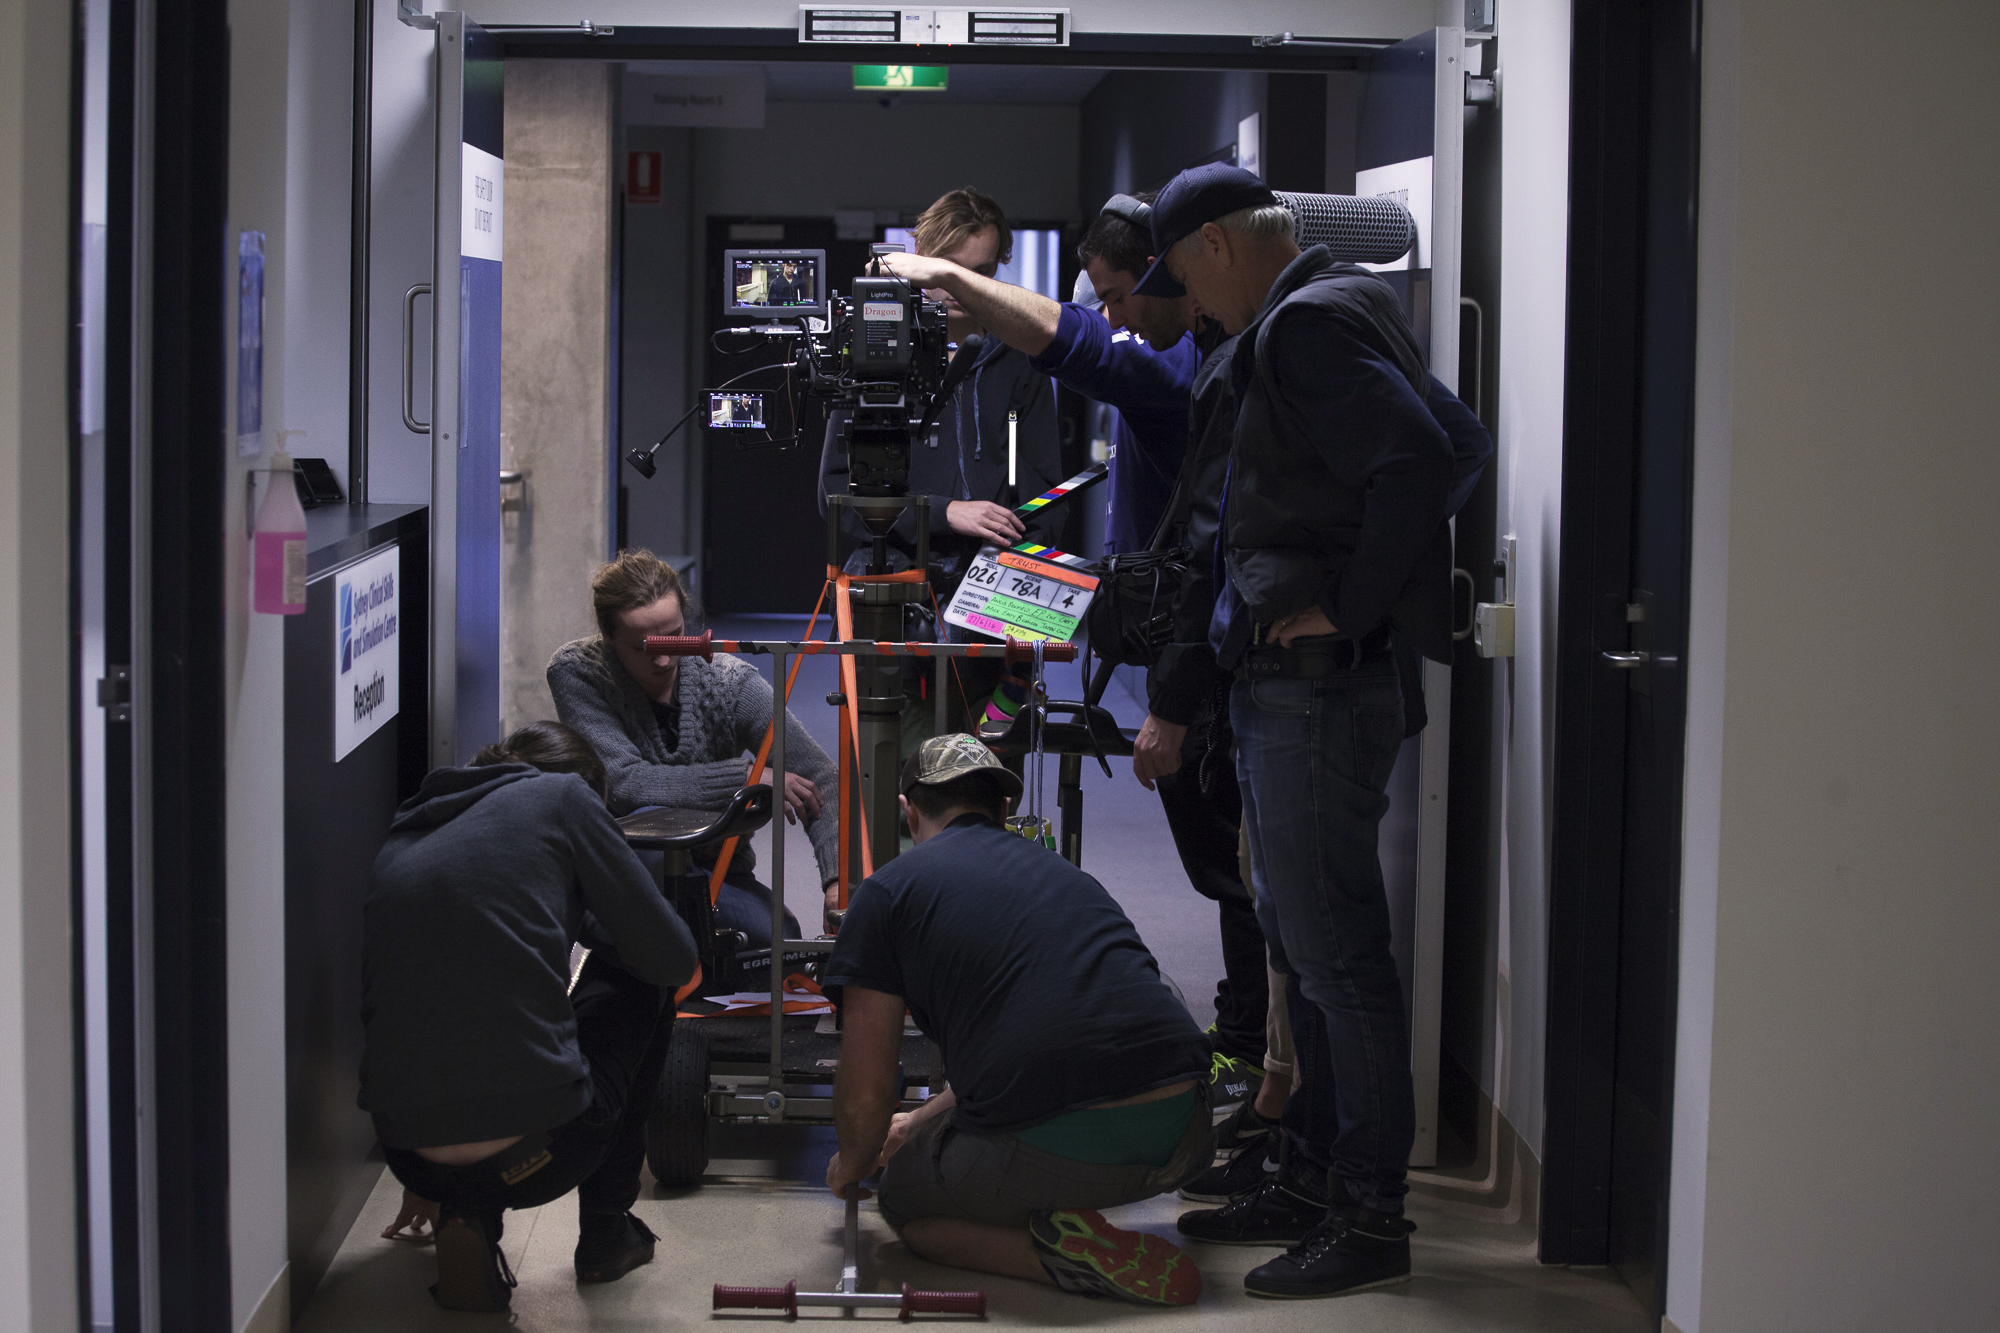 Our grips department responsible for making sure the camera moves without any problems. The crew here are securing a dolly in this picture before it is about to be run down the hallway.